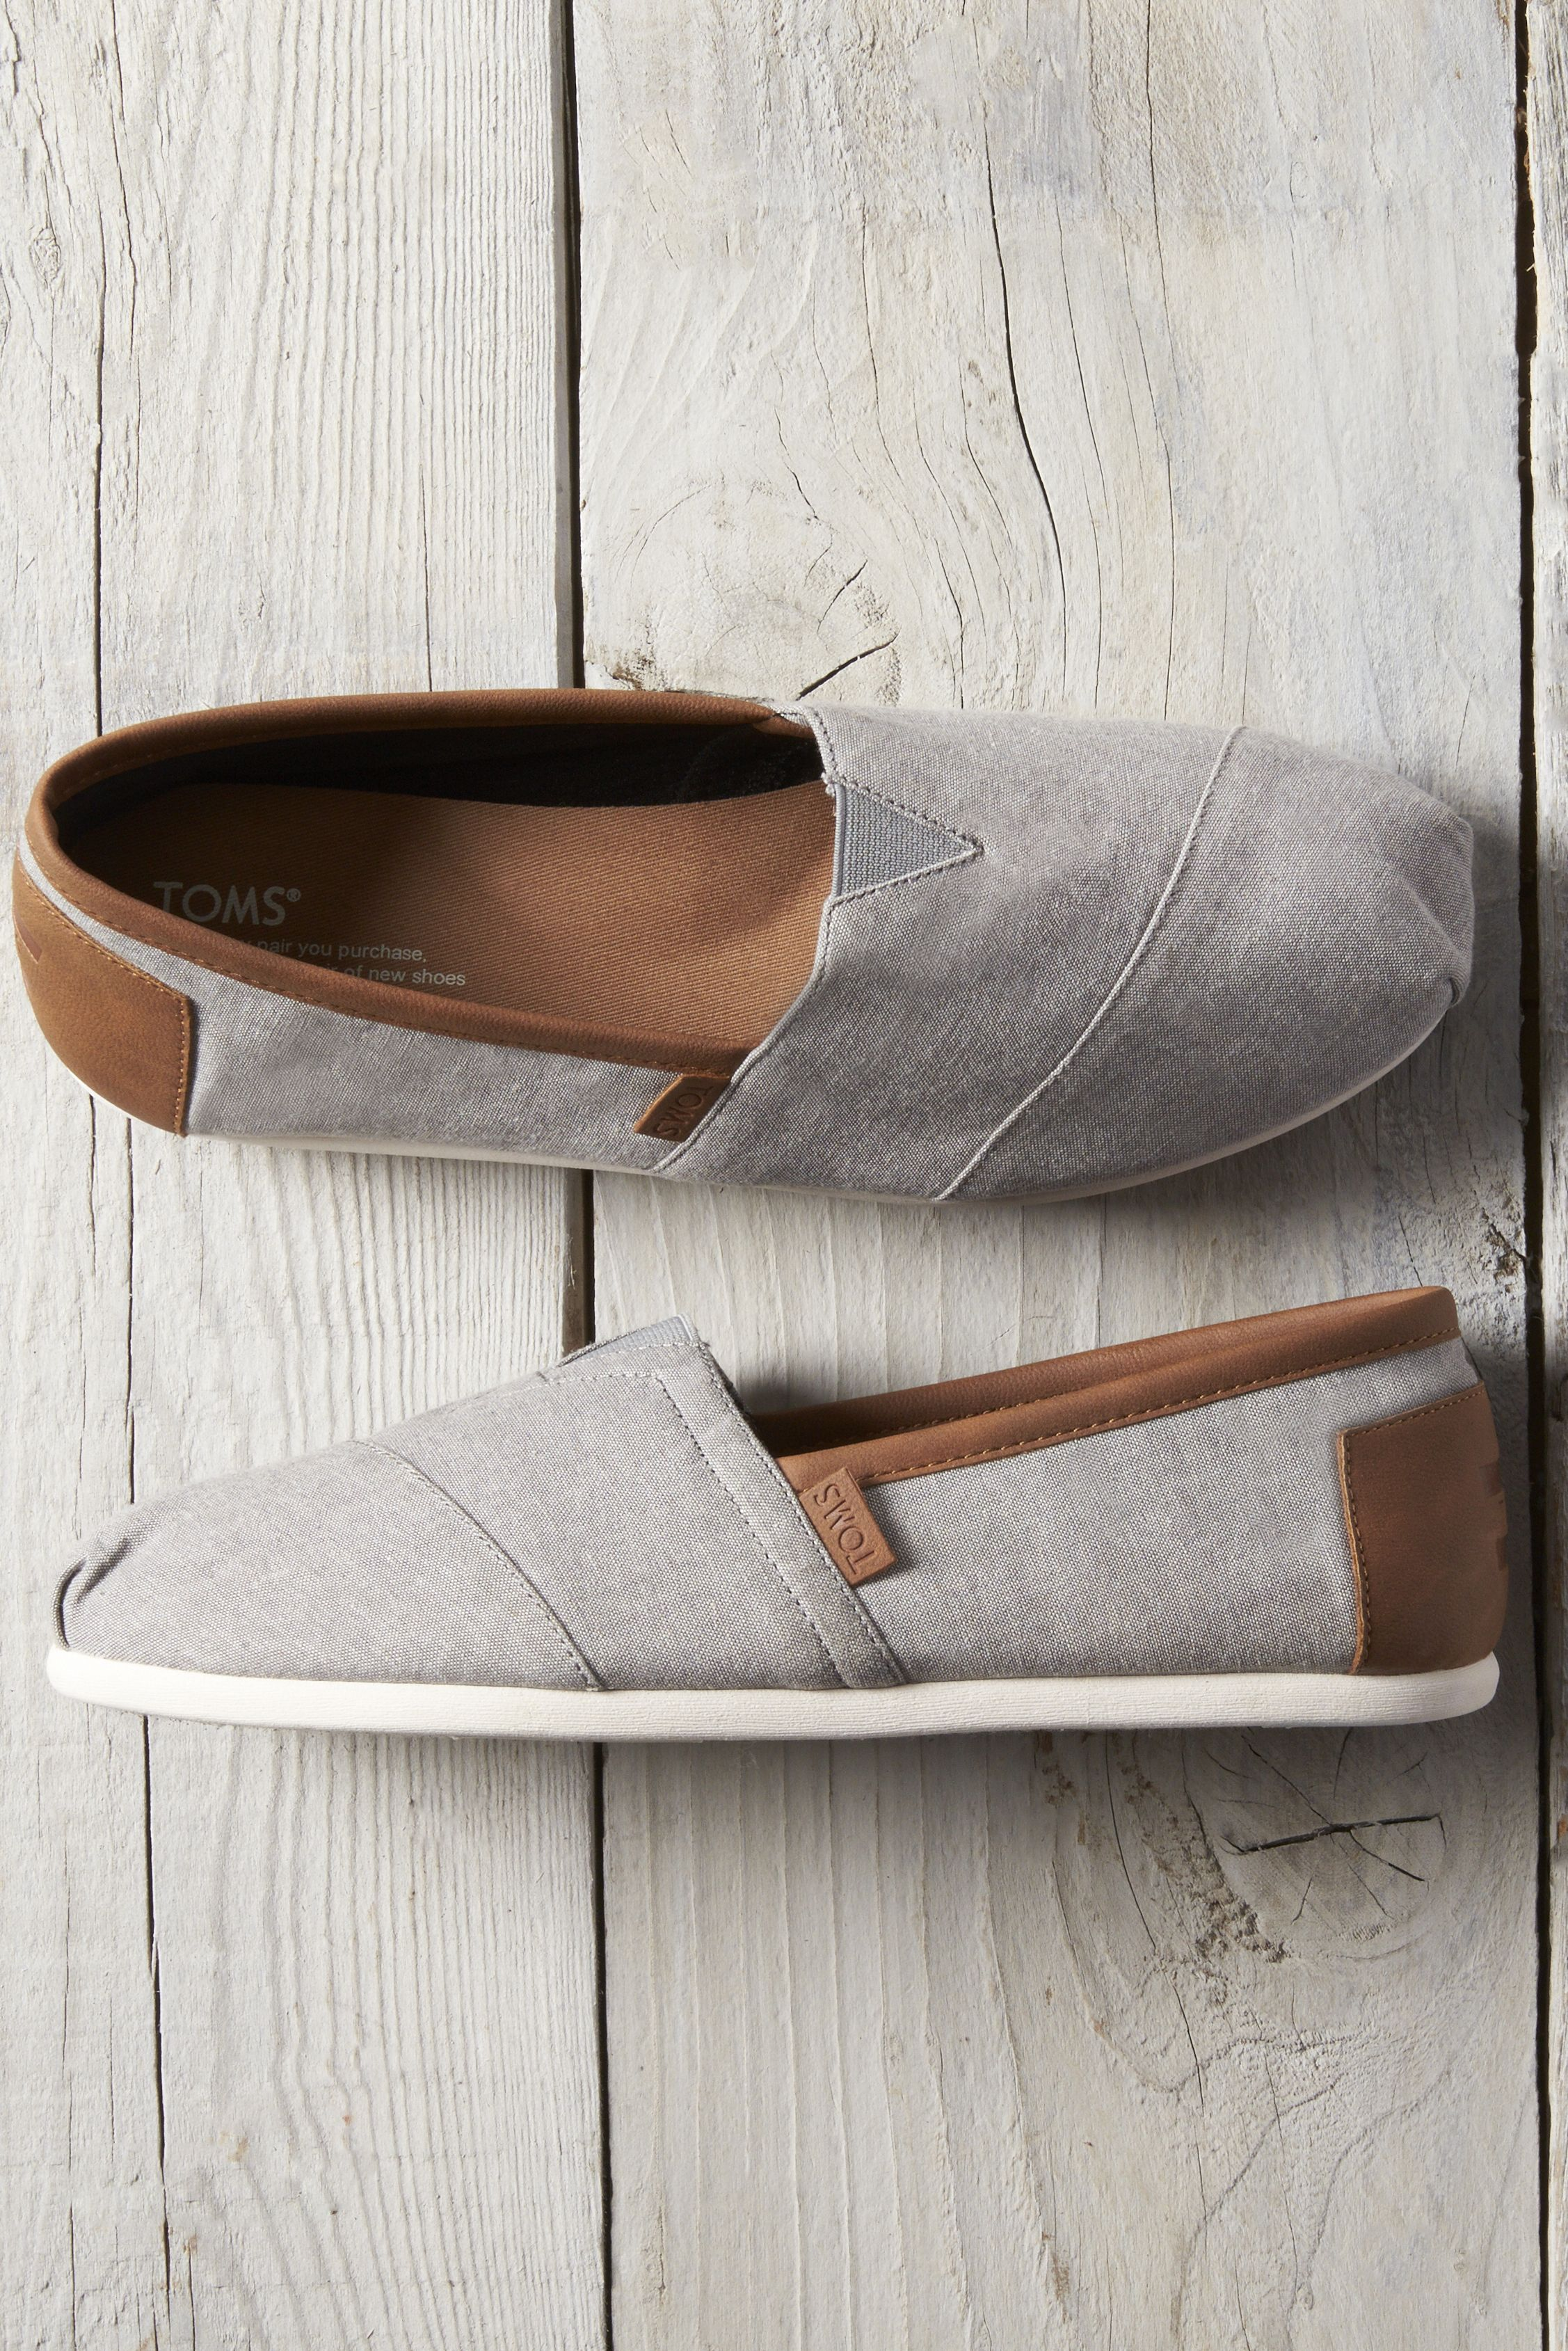 info for c436a 89182 Frost Grey Chambray Men s TOMS Classics for comfort and style. These  slip-on shoes have a molded footbed for extra cushioning and are made from  grey ...